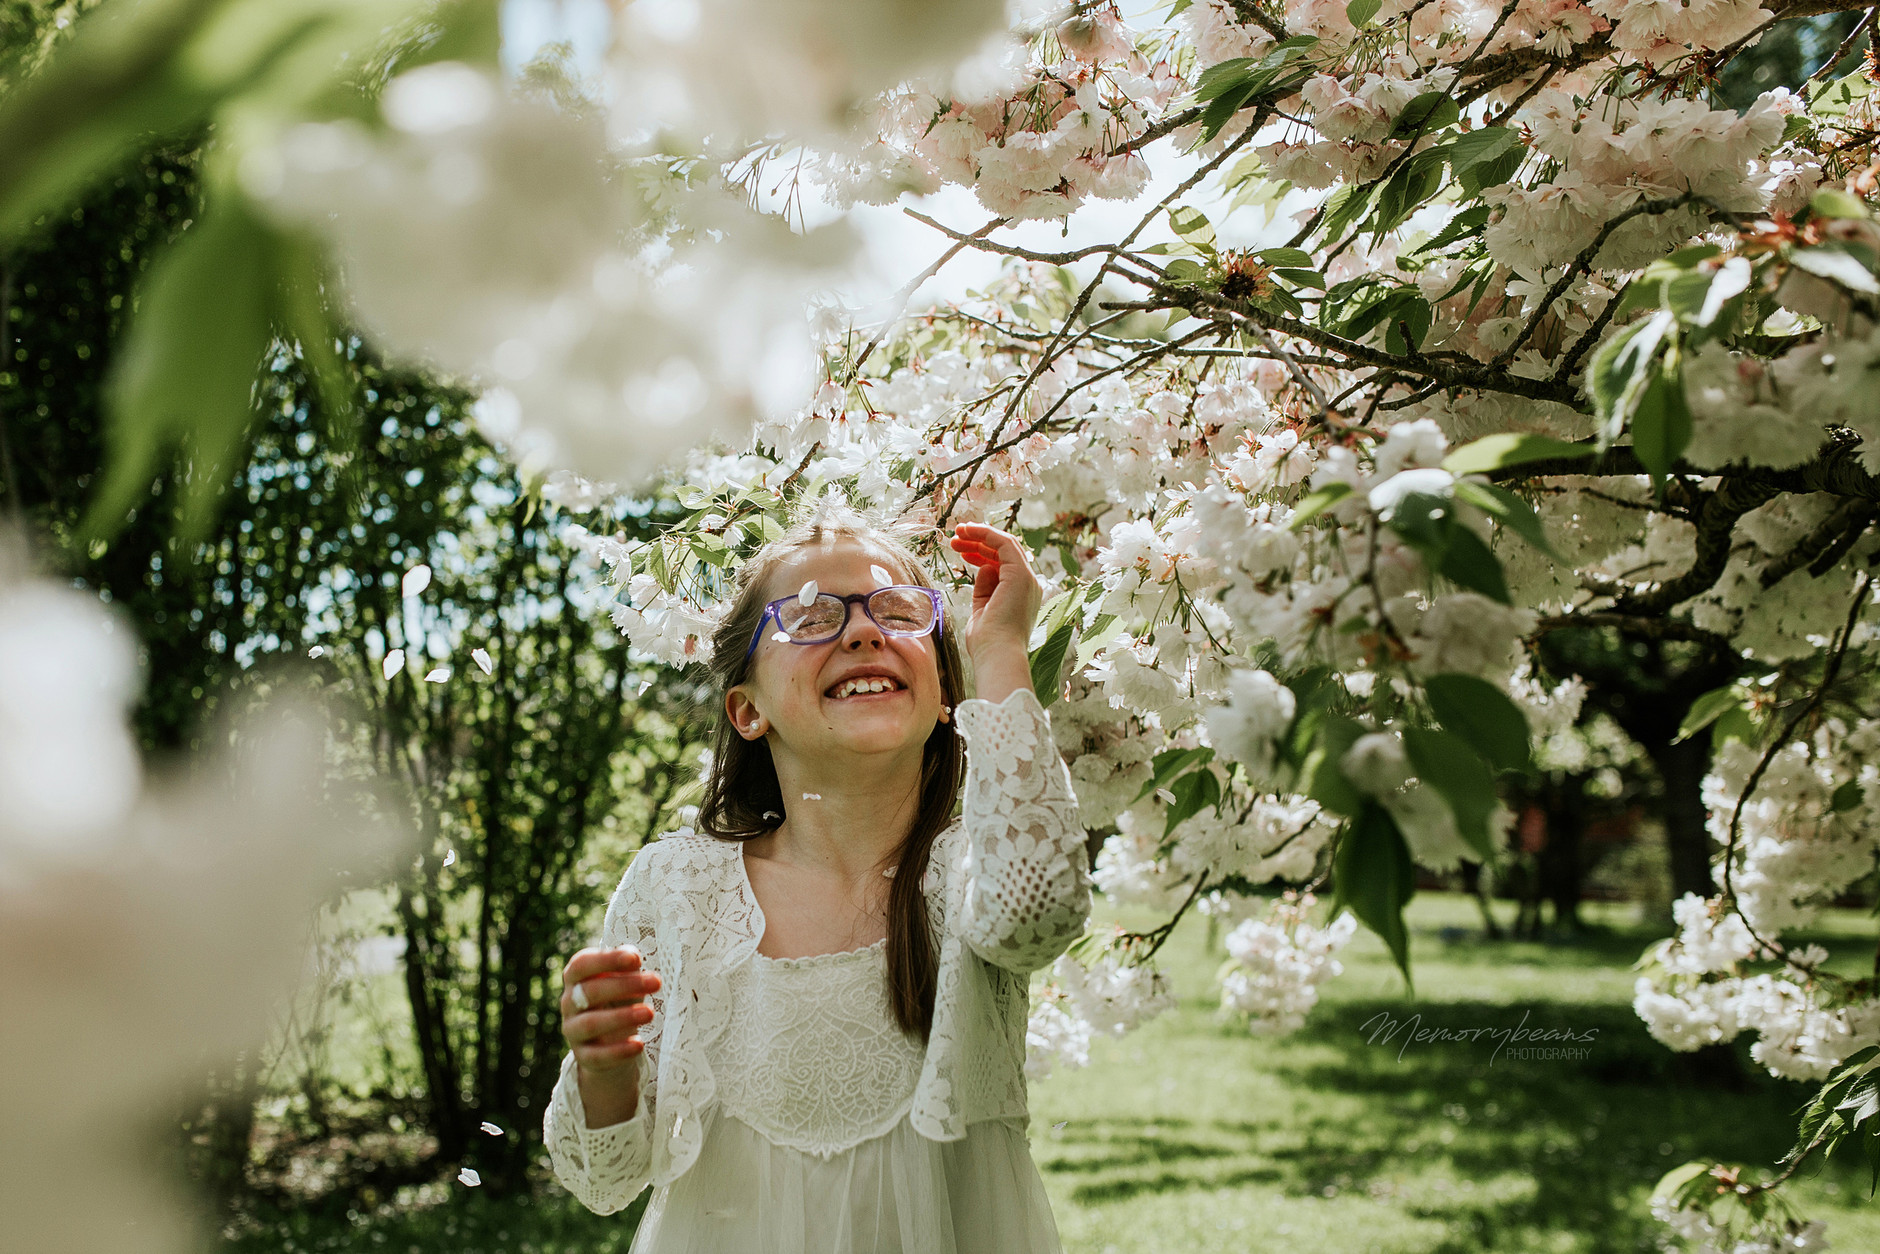 Excited first communion child under blossom trees at the Botanical Gardens in Dublin